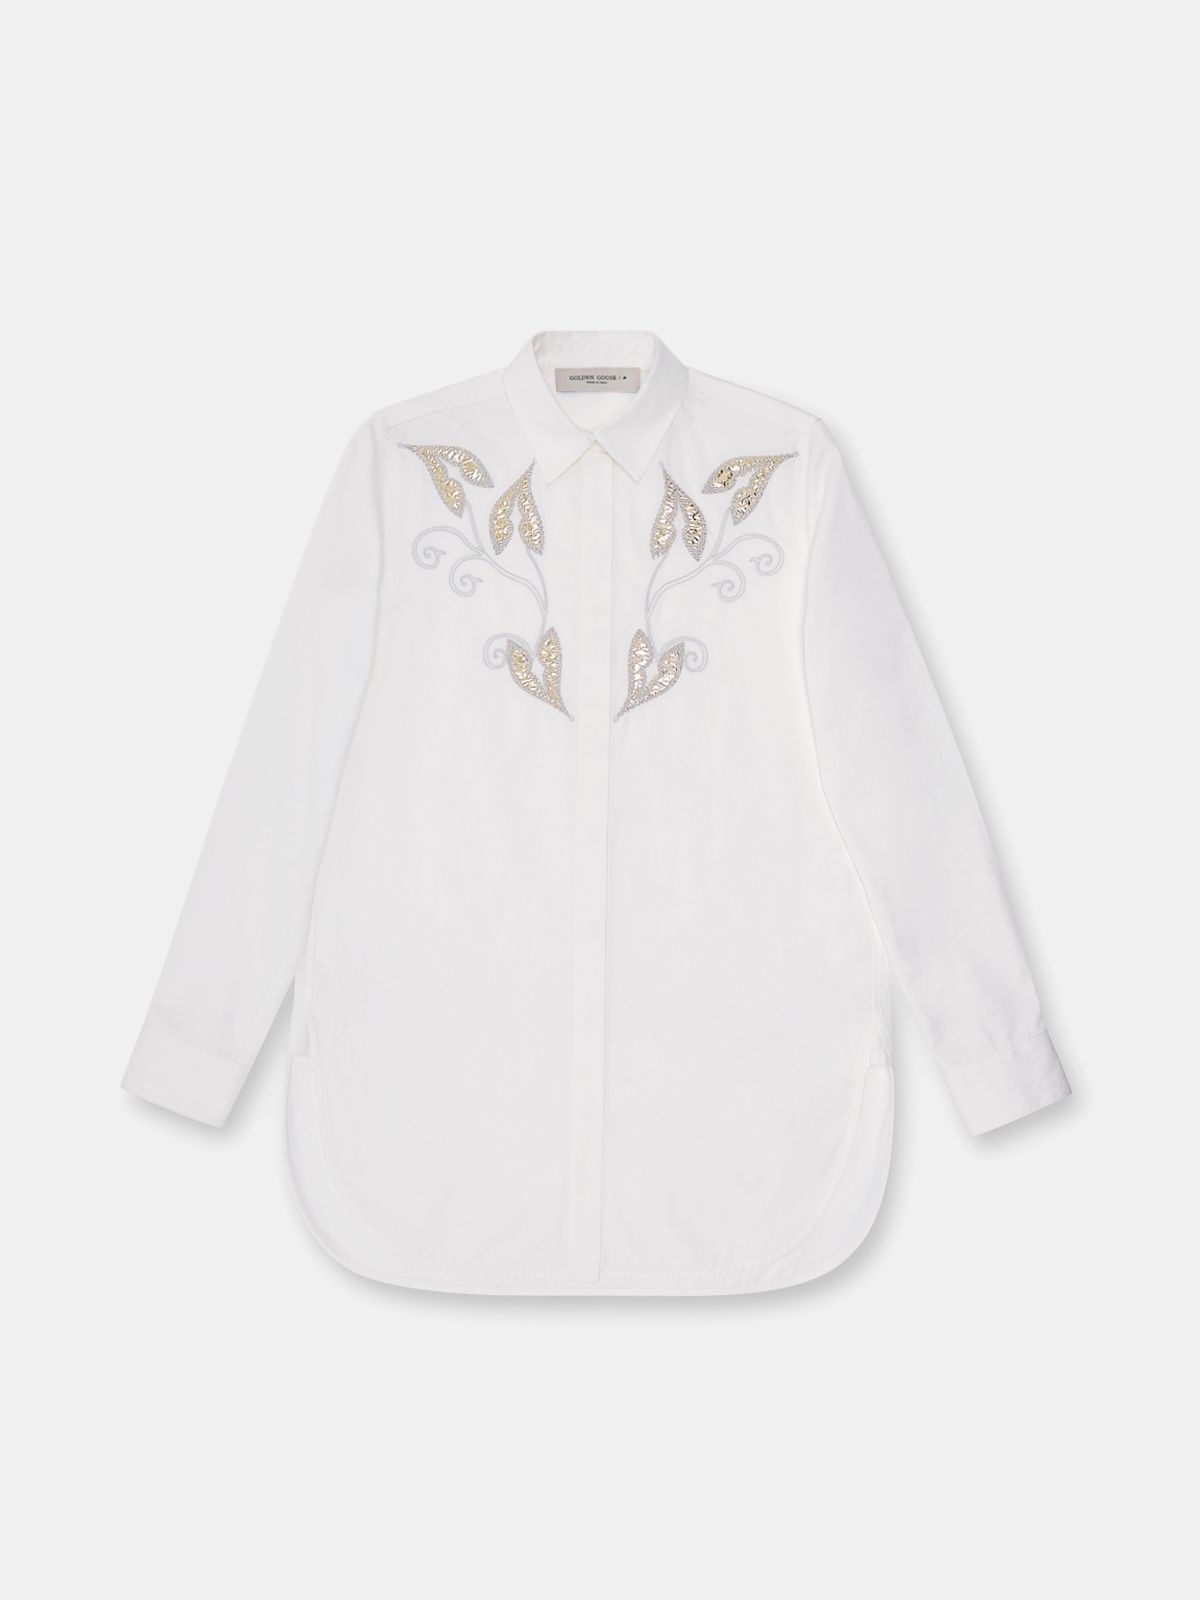 Golden Goose - Alice popilin shirt in white with gold leaf embroidery in